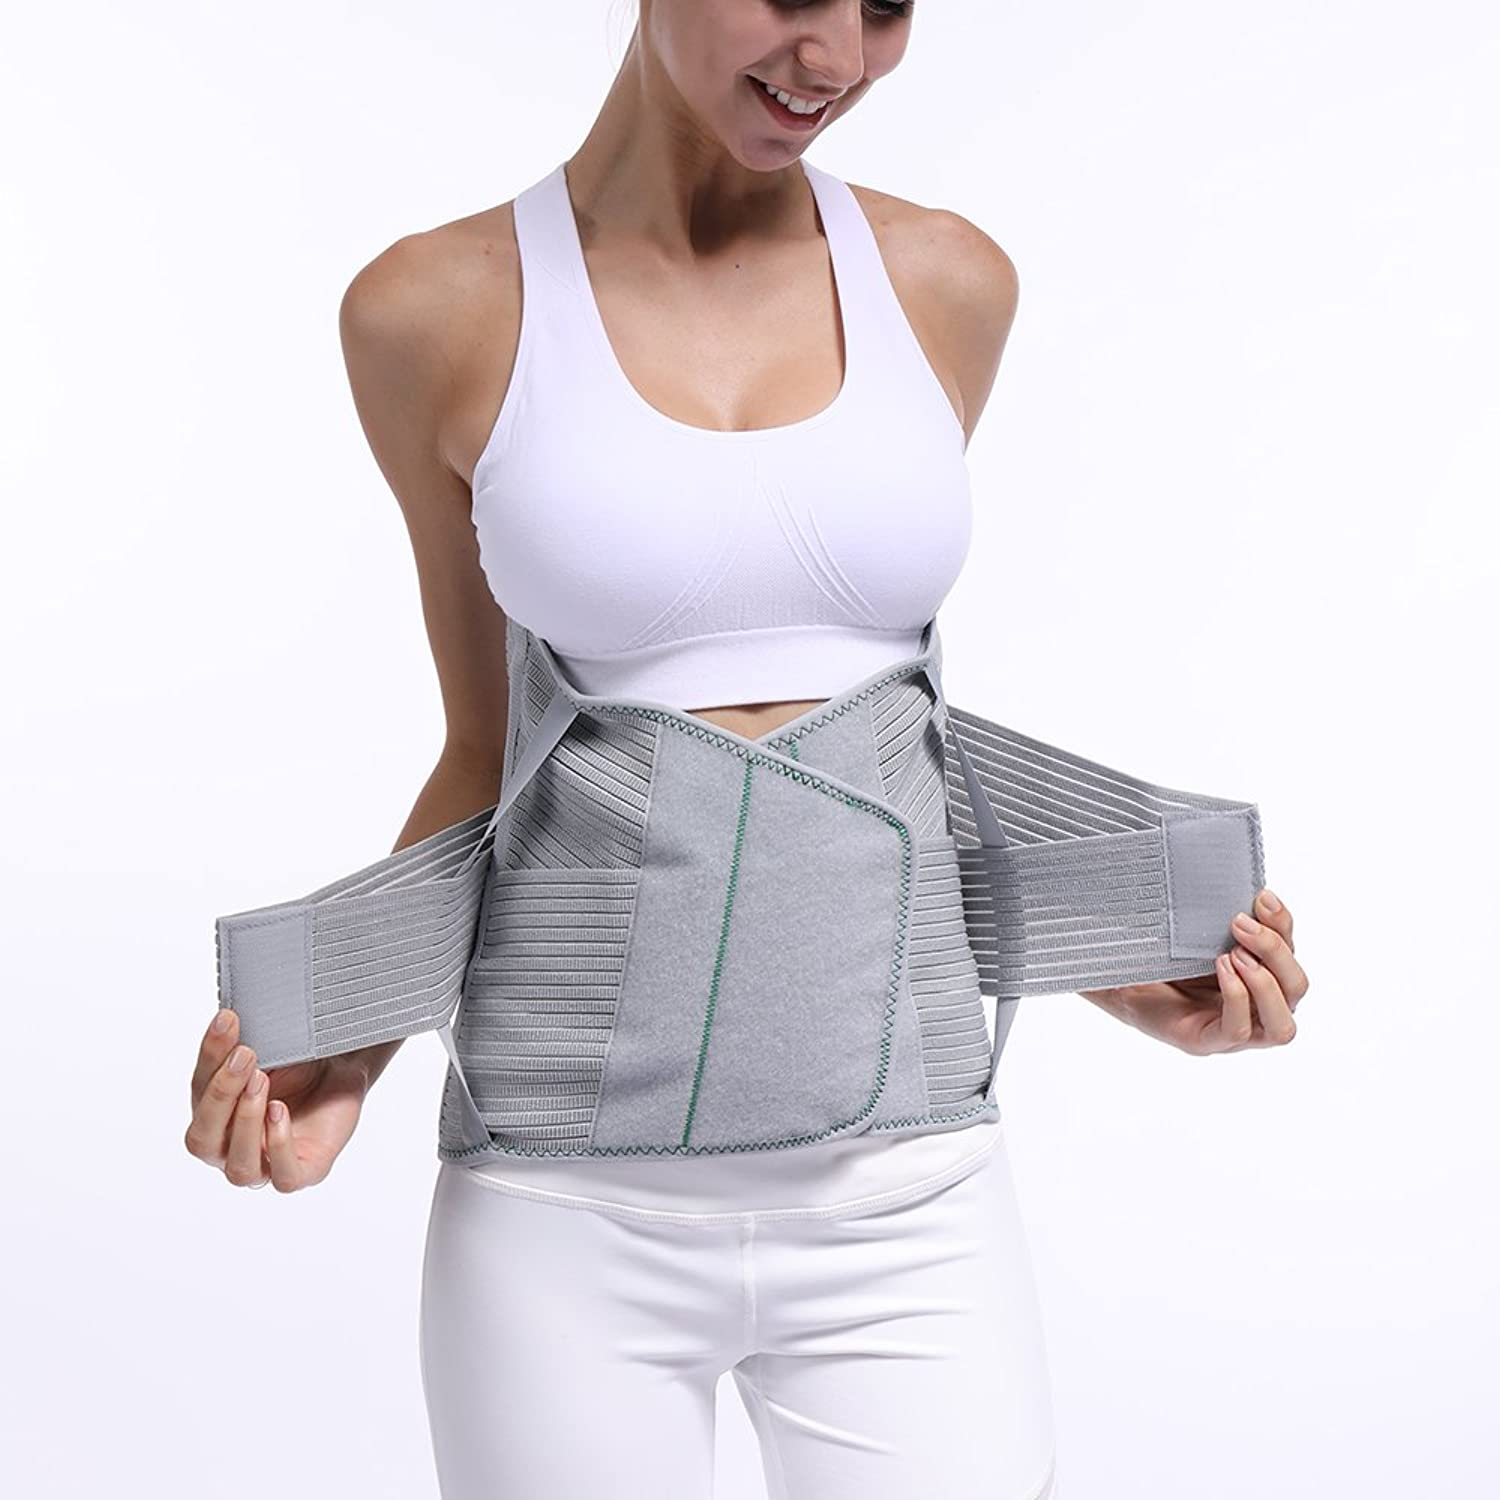 Back Support, Steel Plate Support Strap Sports Training Corset Slimming Belt